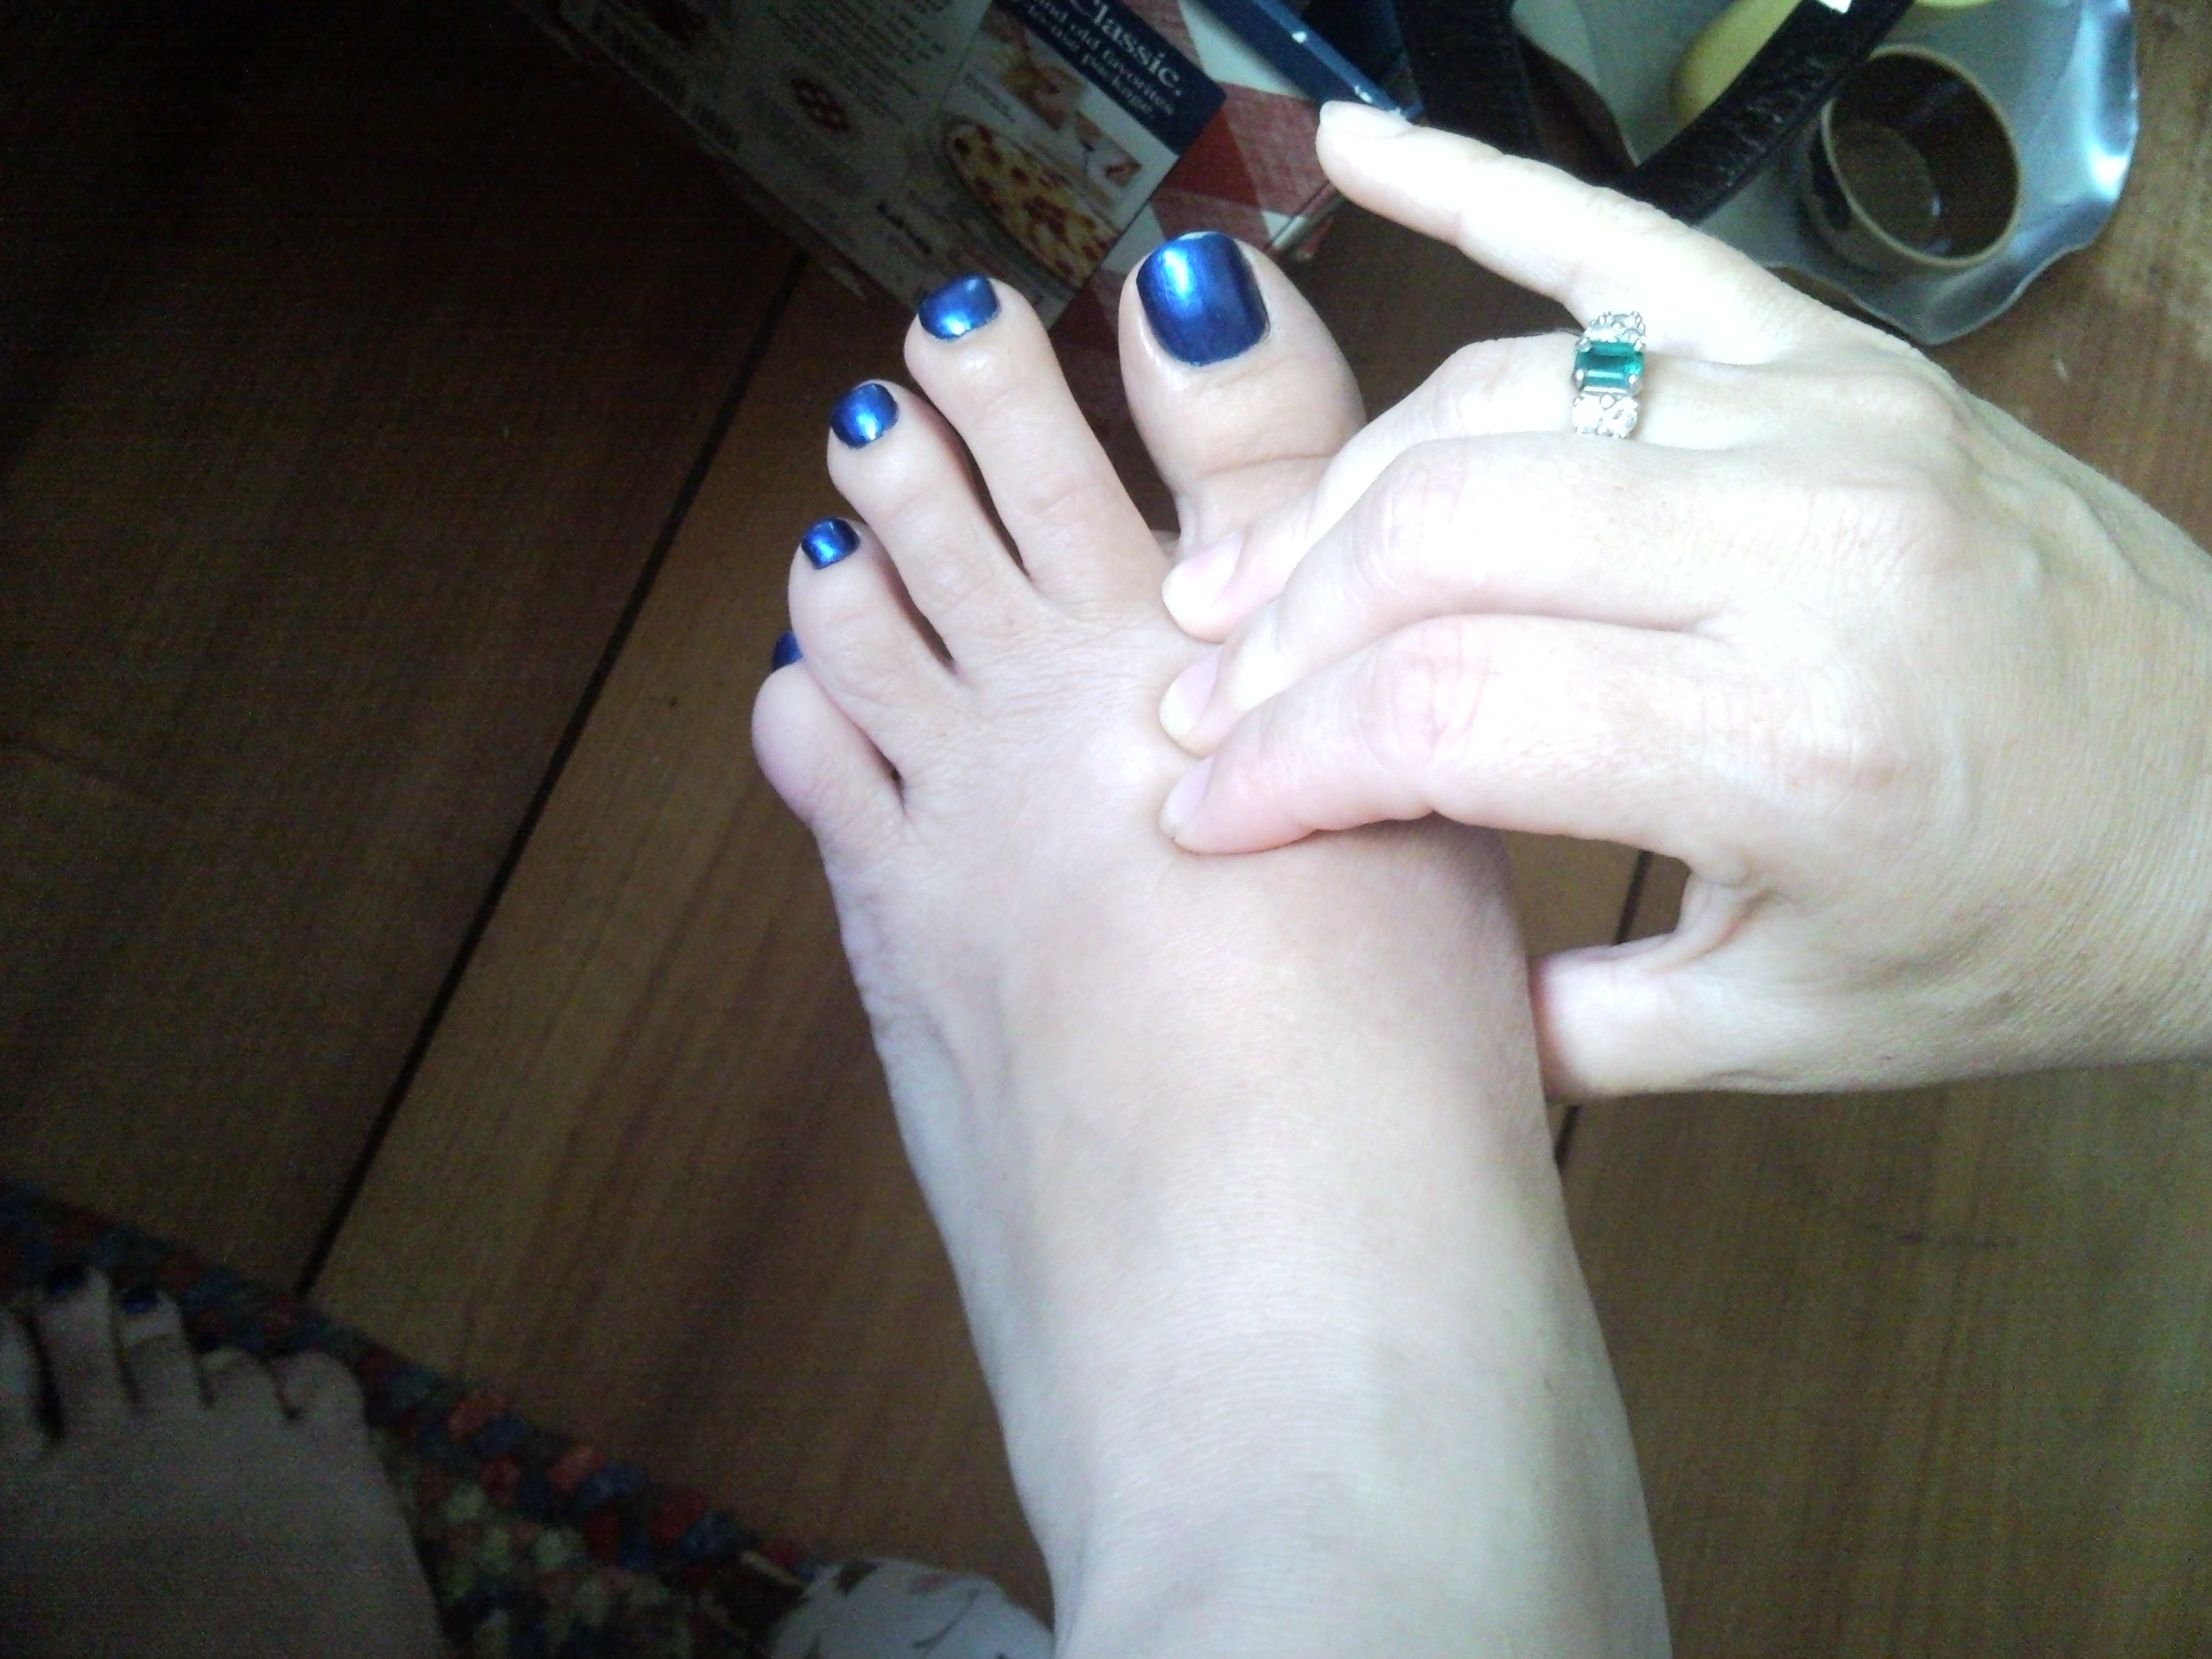 How to locate pressure point on foot for period relief Heather Cate Peacock & Paisley Spiritual Coaching & Holistic Healing